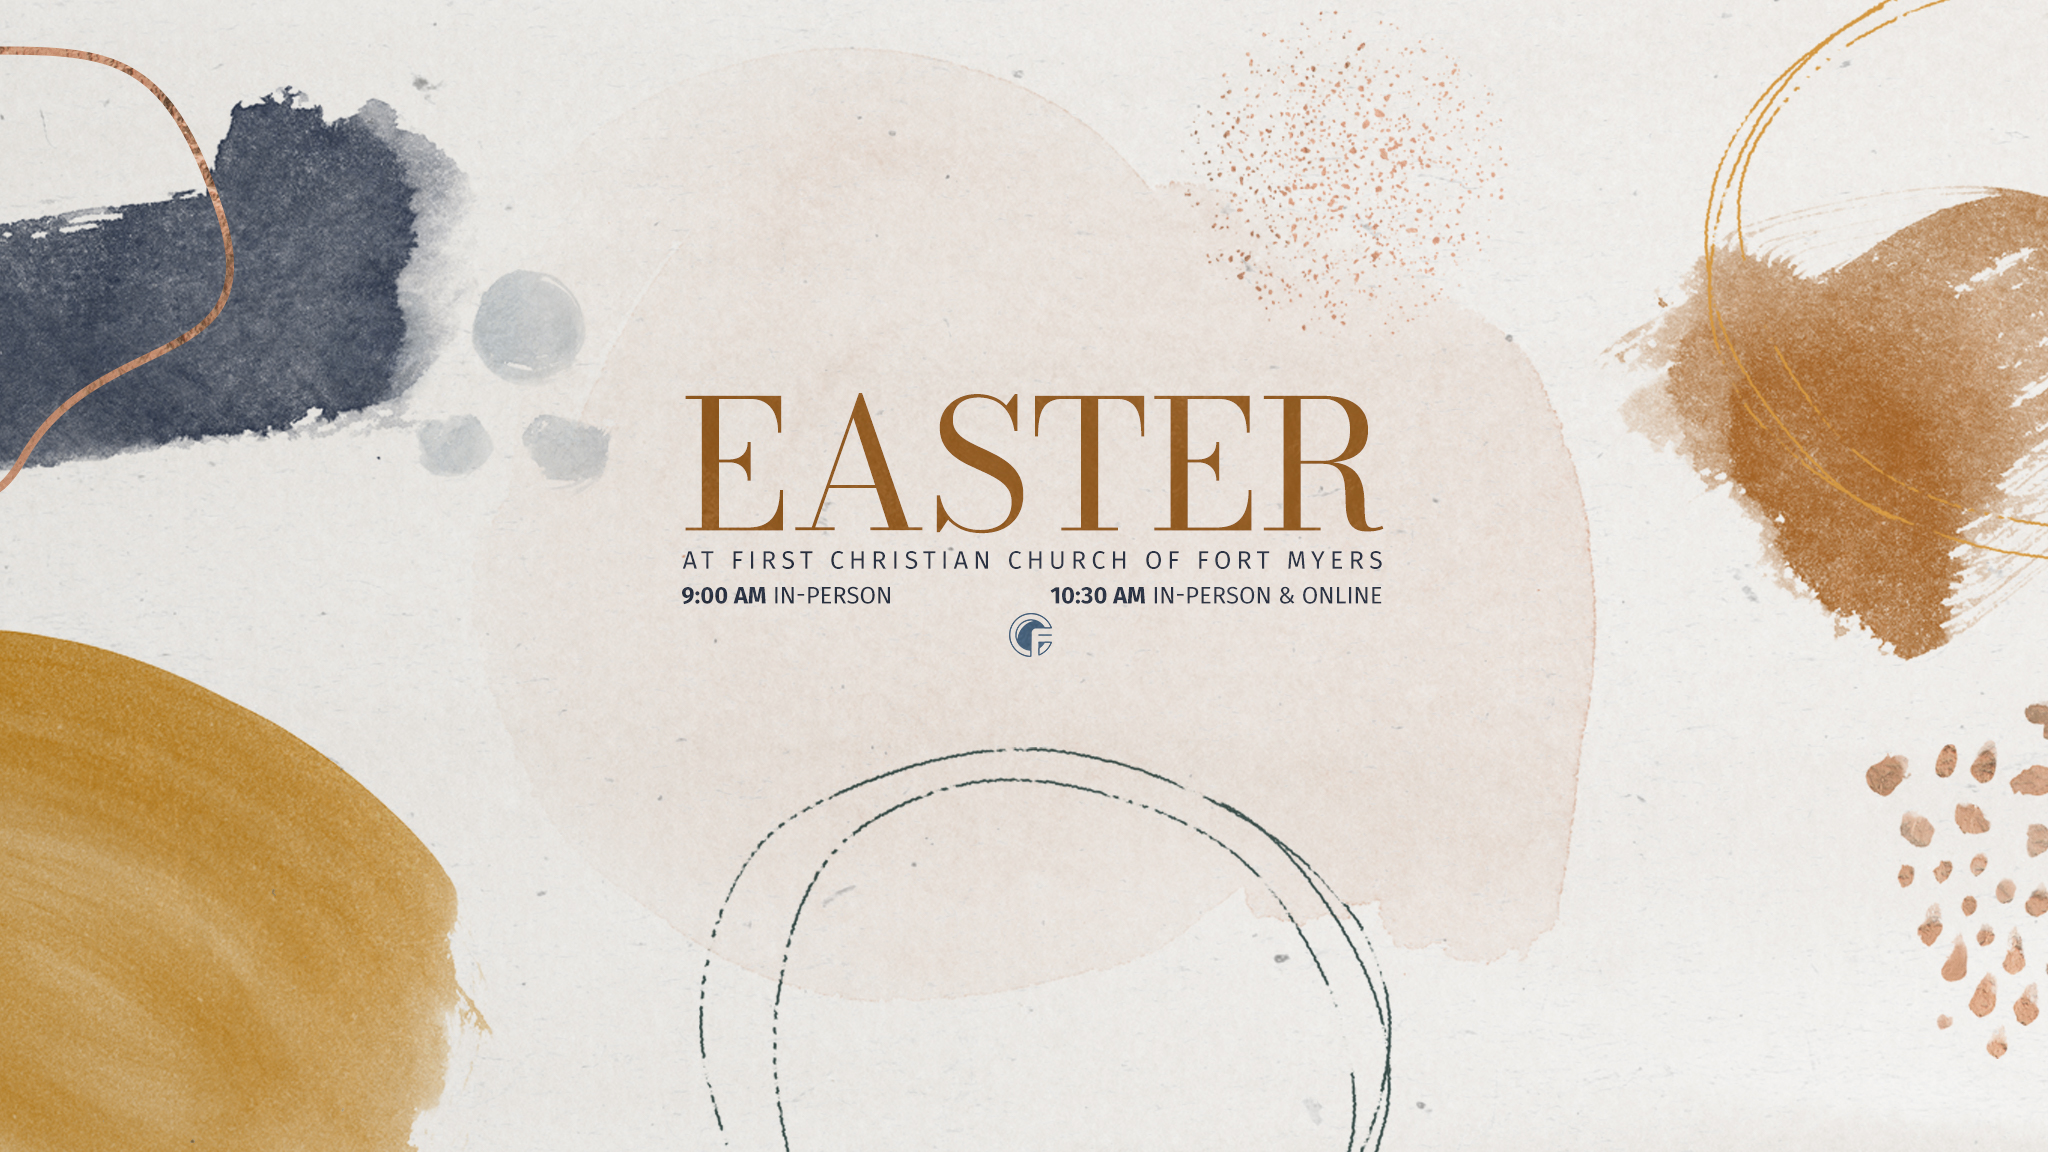 Easter Services 9:00 & 10:30 AM